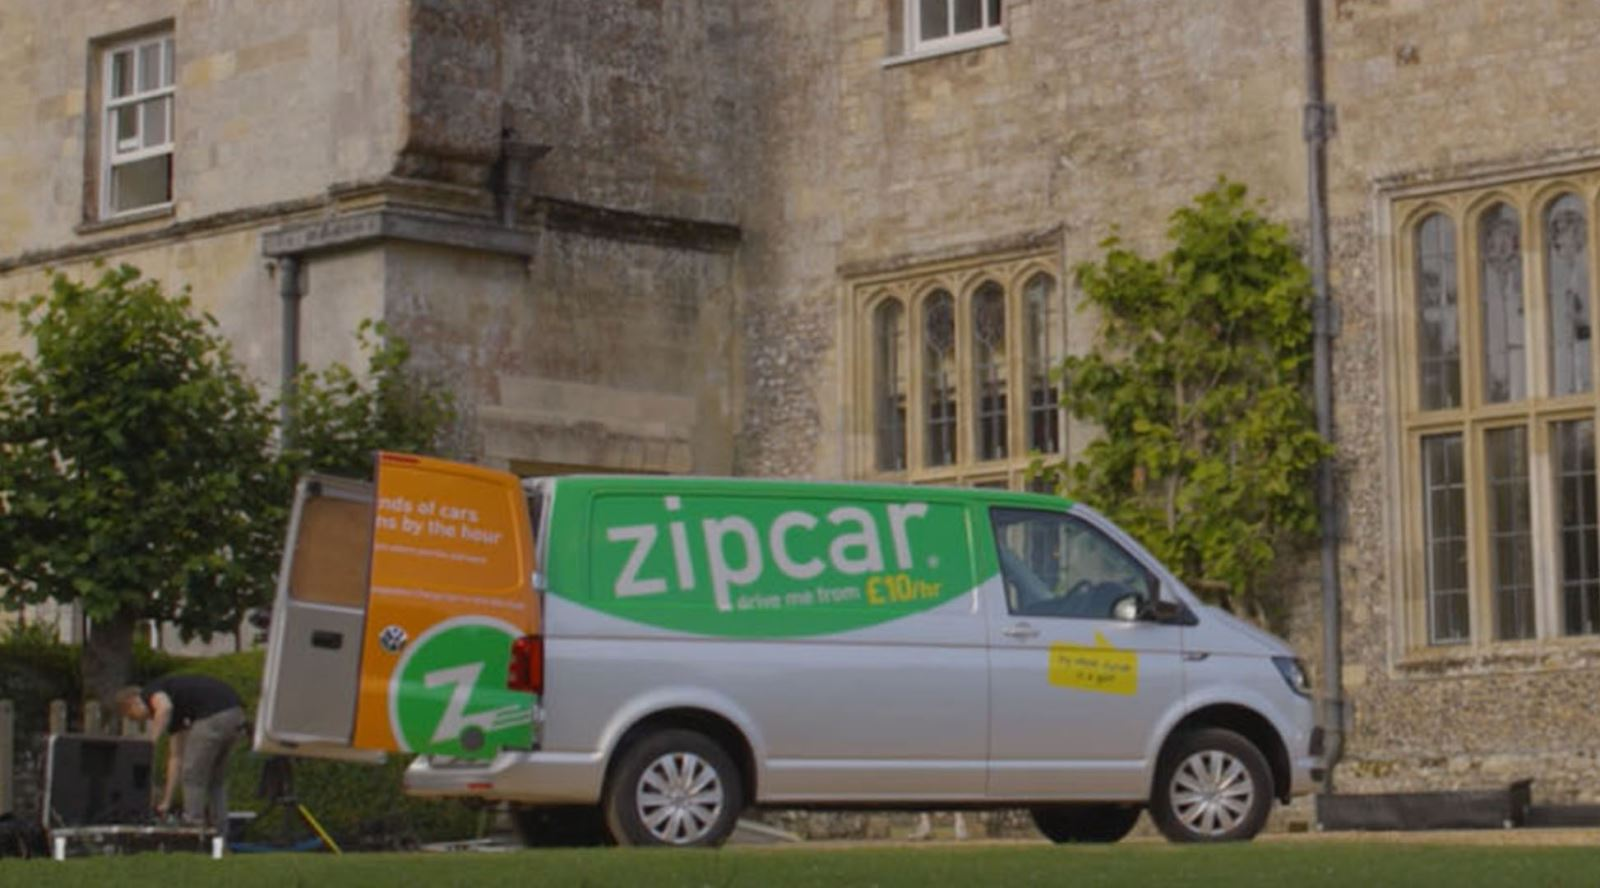 The Guild of Television Camera Professionals : New Zipcar discount